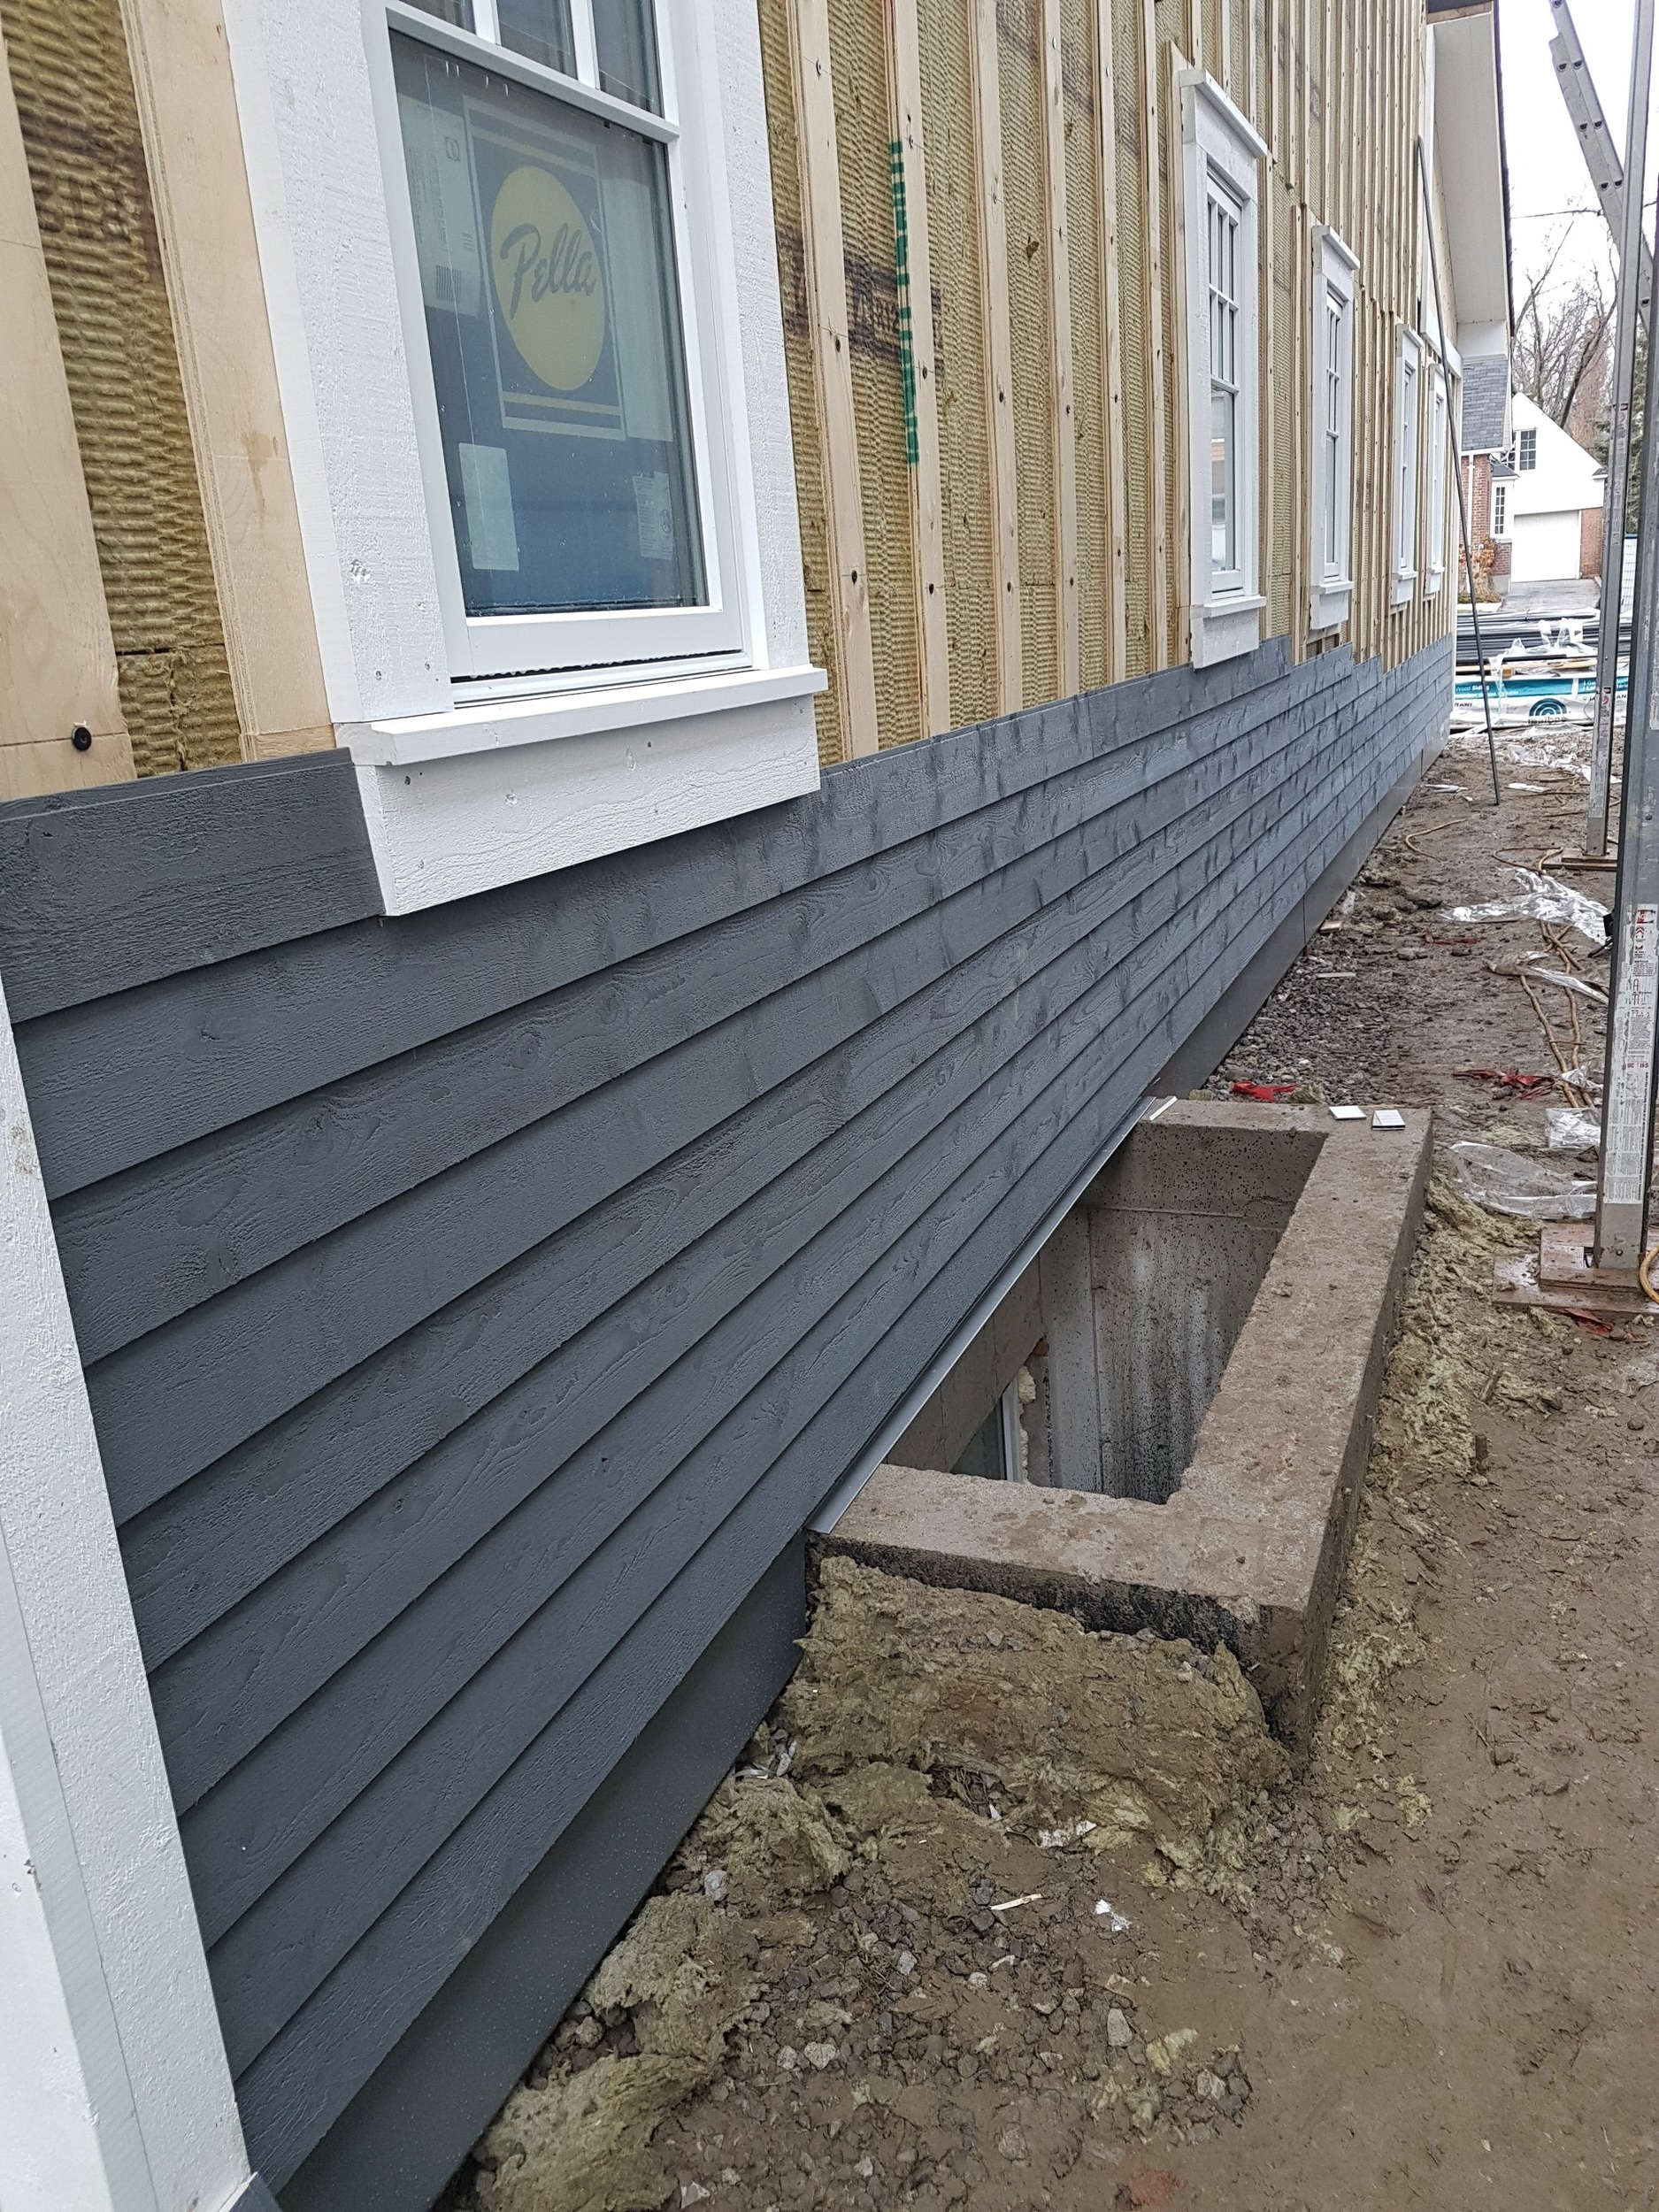 Wood siding over exterior mineral wool insulation.